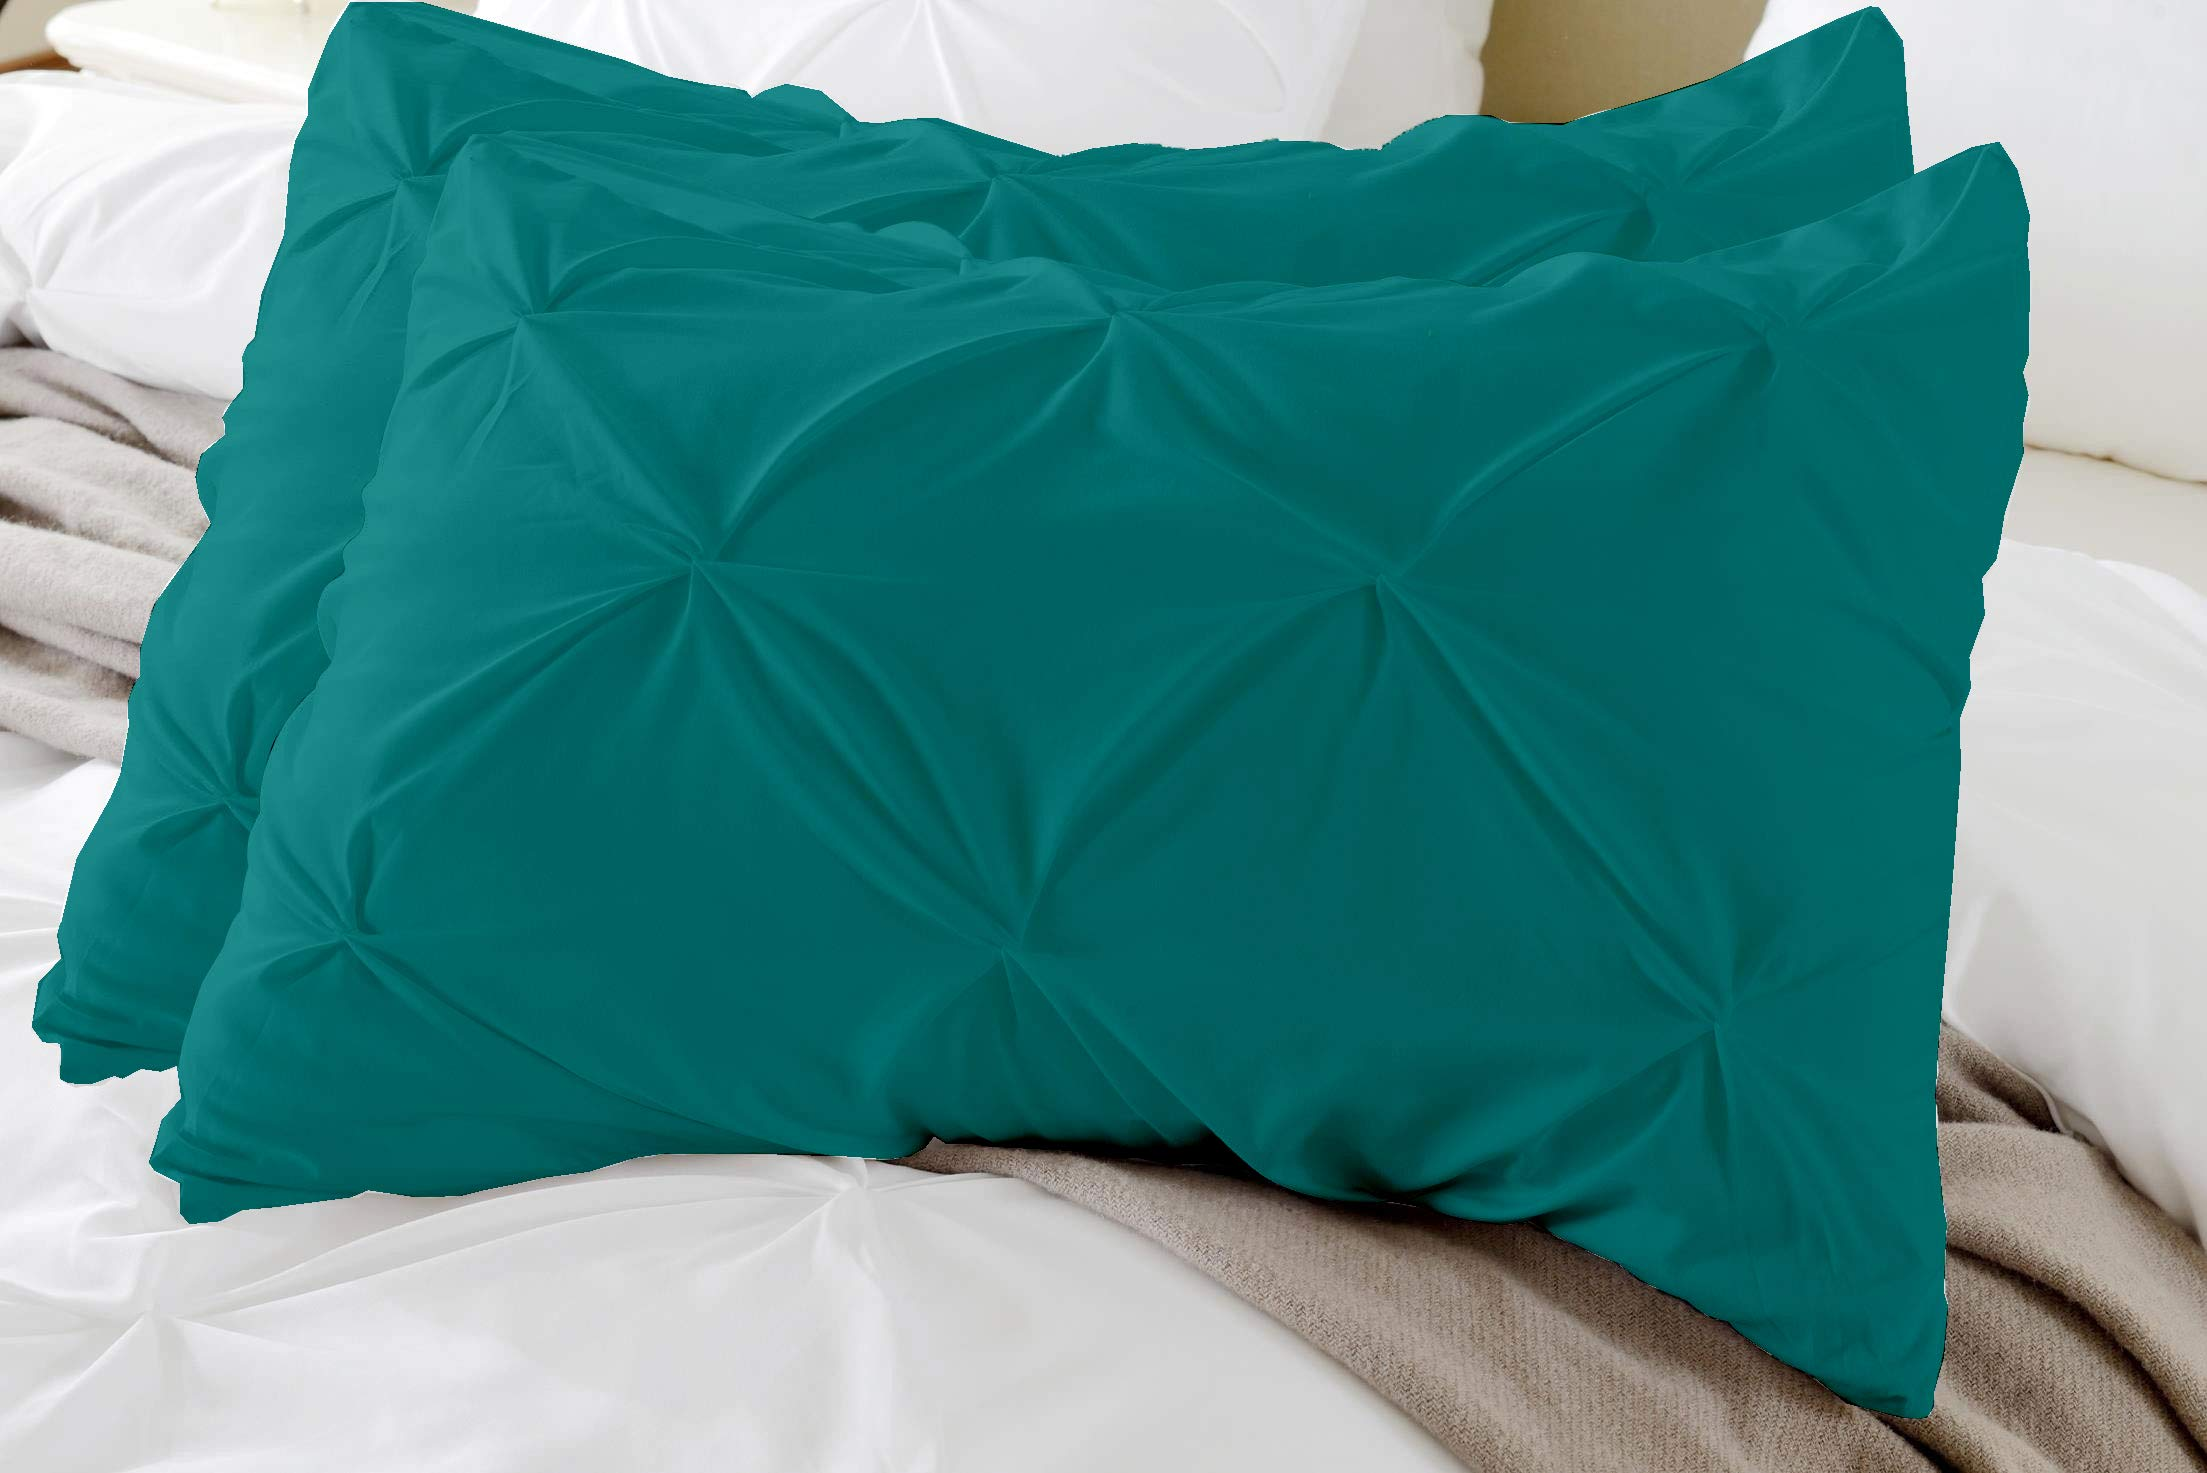 Kotton Culture Set of 2 Pillow Shams Pinch Pleated Set 100% Egyptian Cotton 600 Thread Count Premium Hotel Quality Bedding (Standard Size (20''X26''), Teal) by Kotton Culture